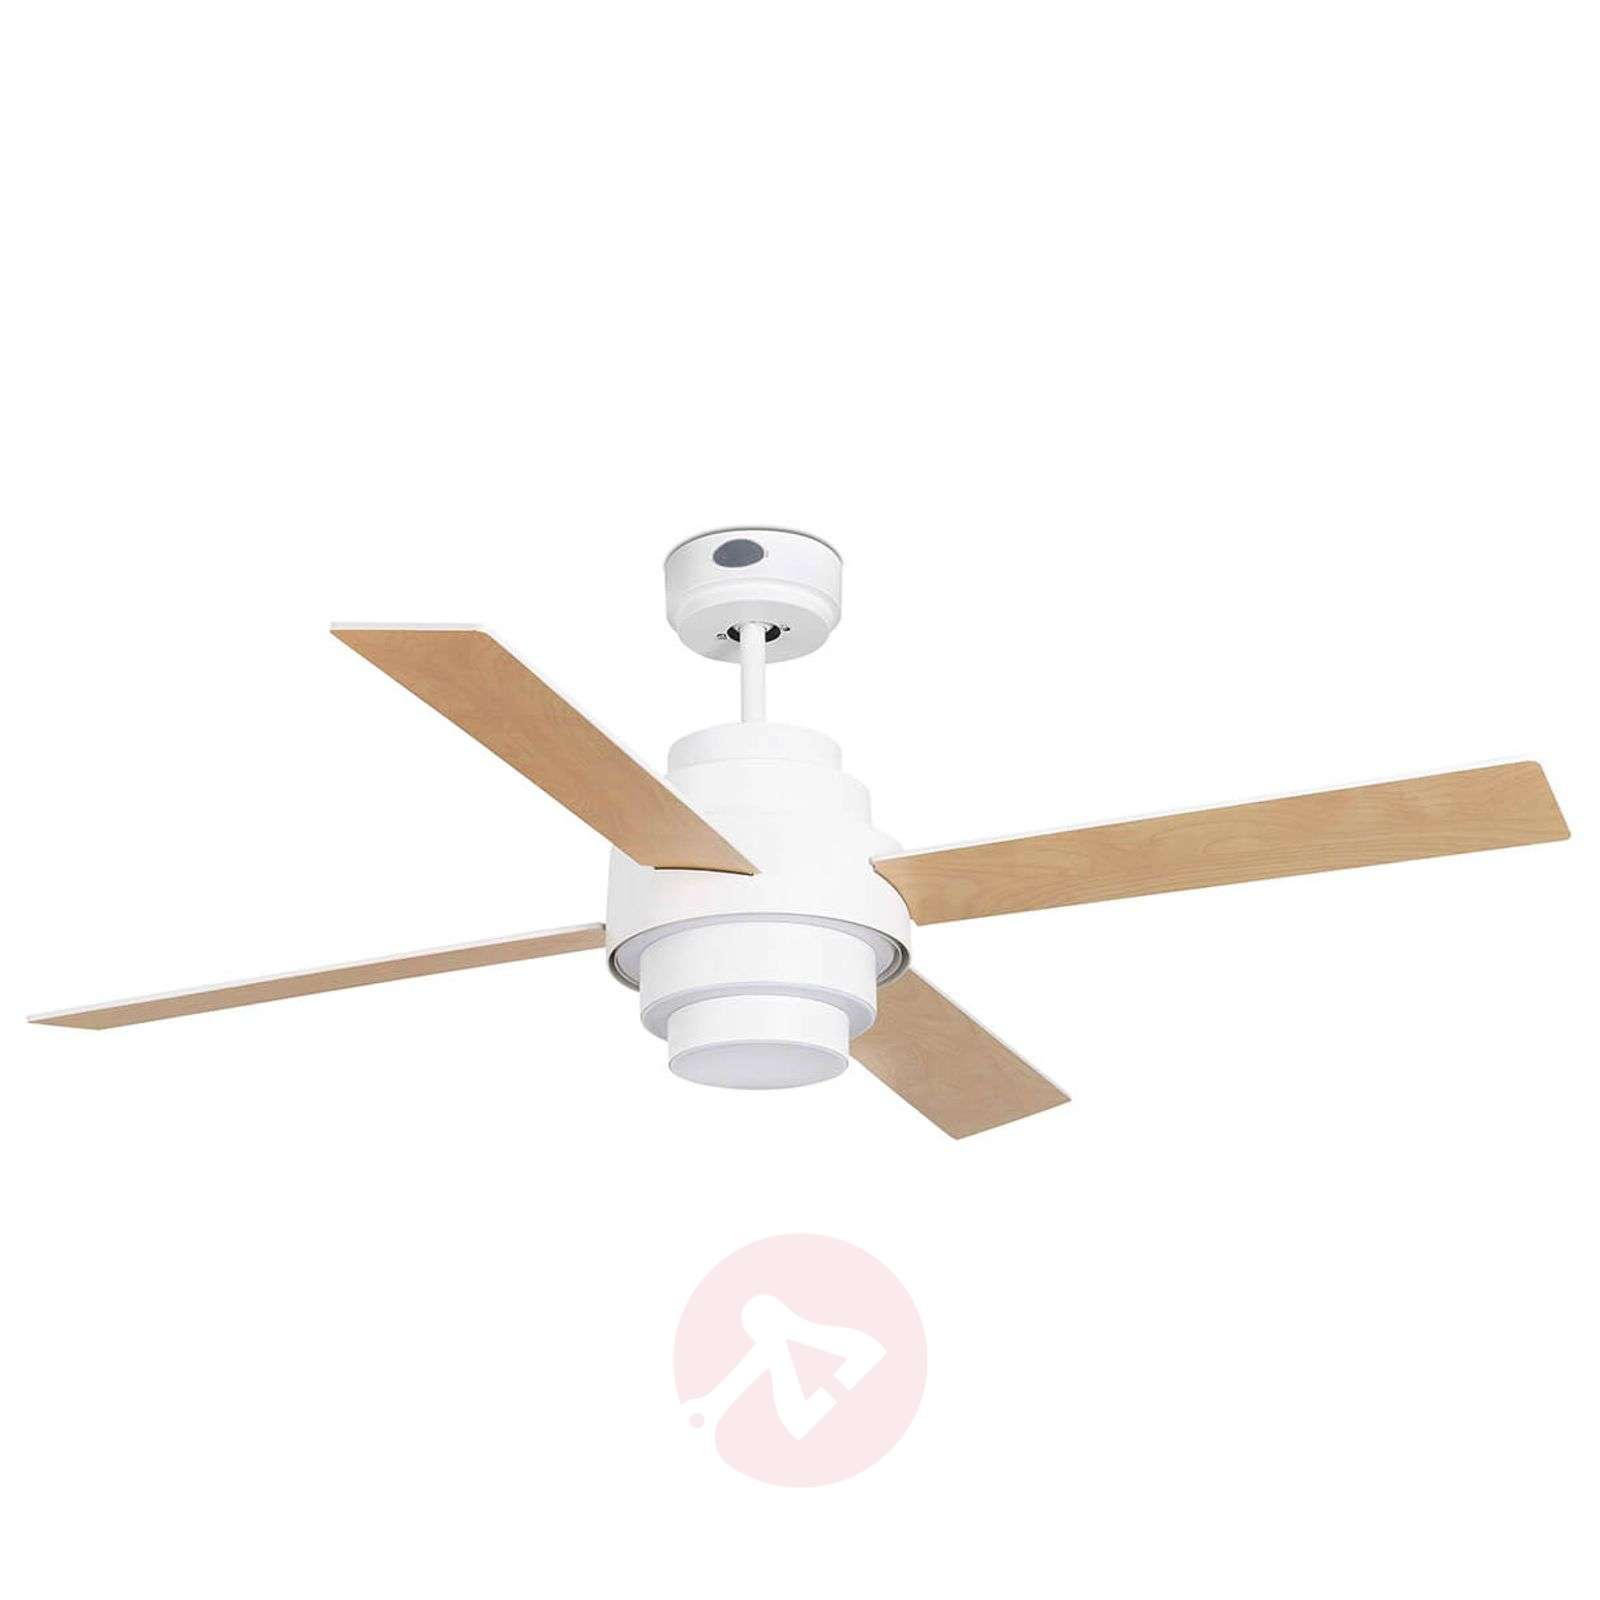 Ventilateur de plafond efficace Disc avec LED